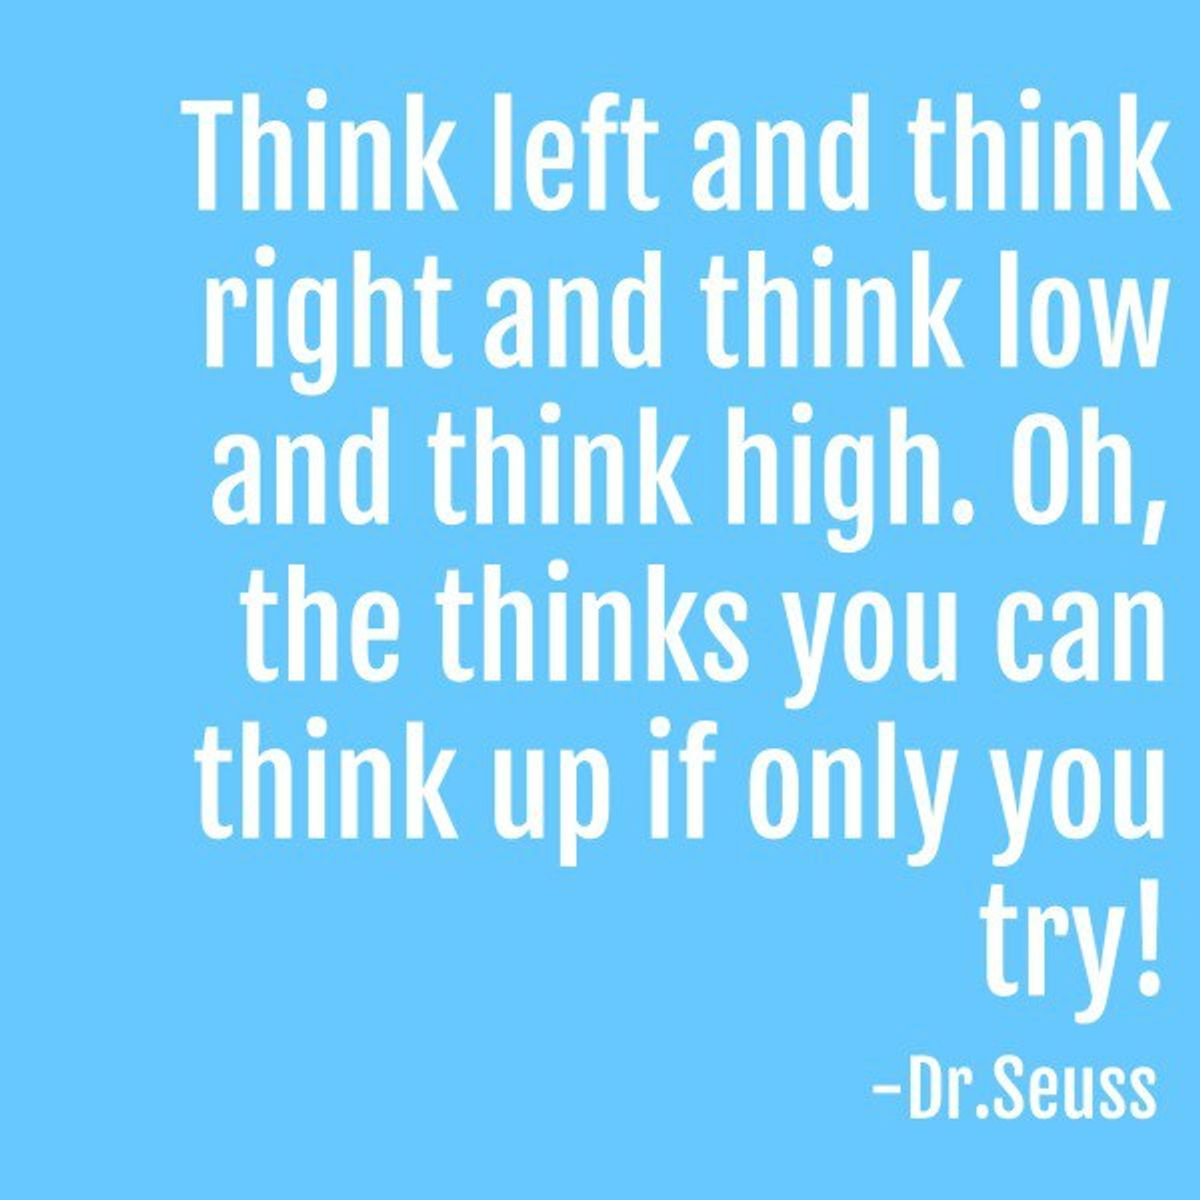 25 valuable thoughts on life Doctor Seuss left us.